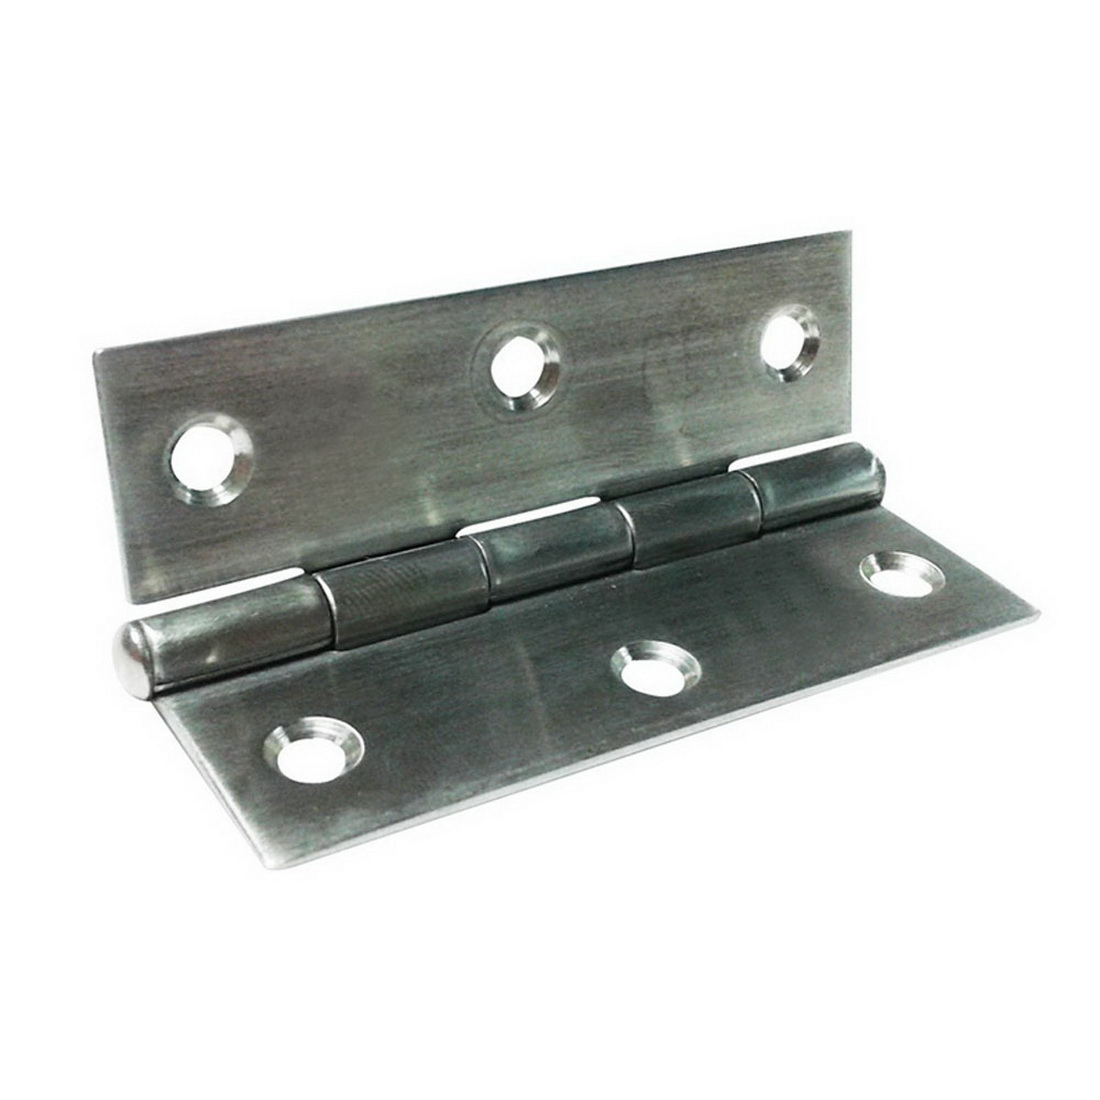 50 x 75mm Fixed Pin Narrow Butt Hinge 304 Stainless Steel